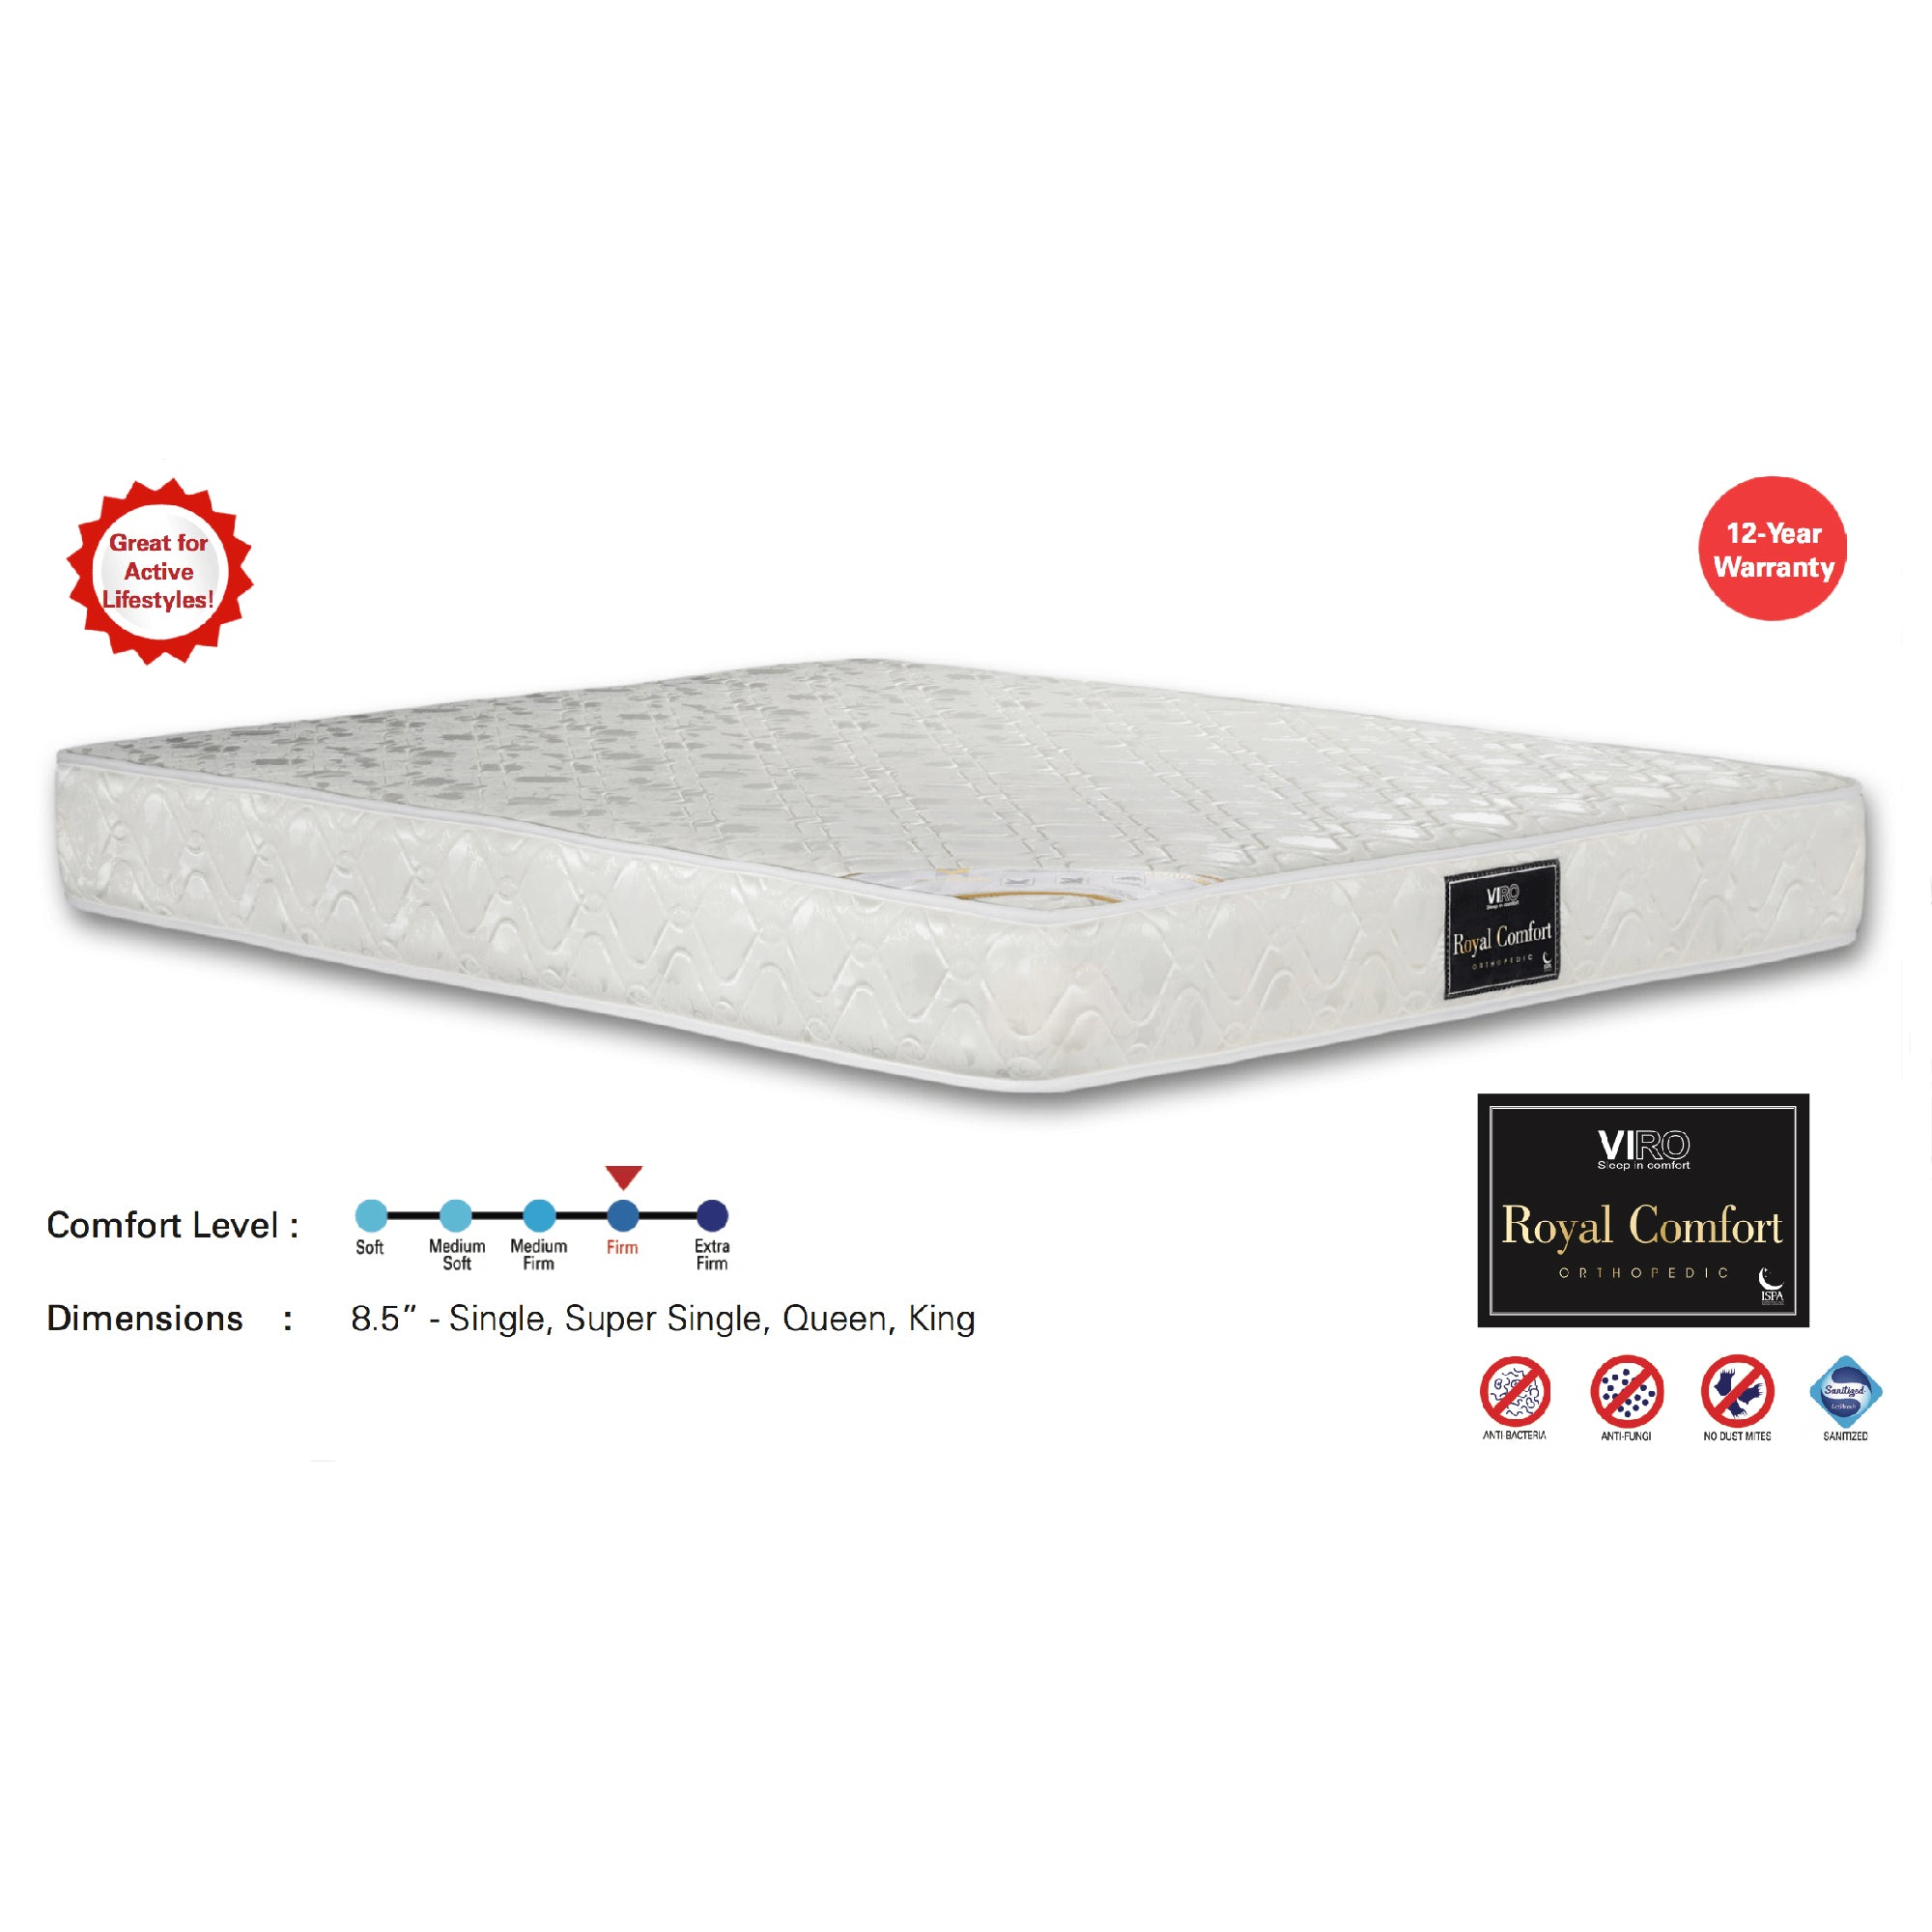 Viro Royal Comfort Pocketed Spring Mattress (3.5 Feet Super Single Size x 8.5